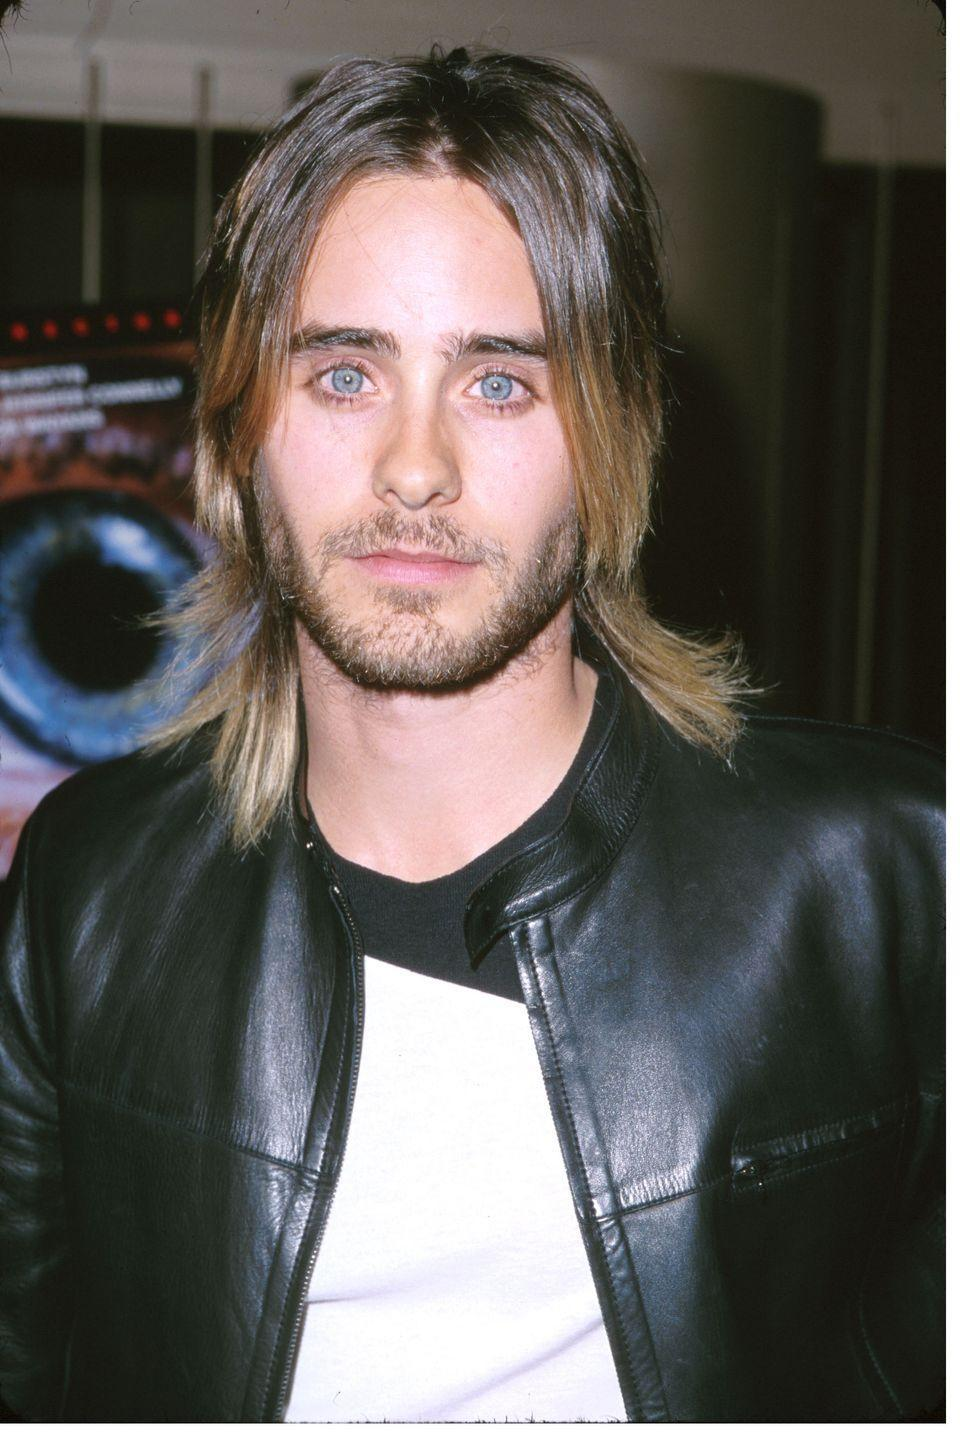 <p>Jared Leto is known for changing up his hair on the regular—most recently growing it out long with highlighted waves. But little did you know that now isn't the only time the actor had a longer look. Here he is in 2000 with a choppy cut.</p>